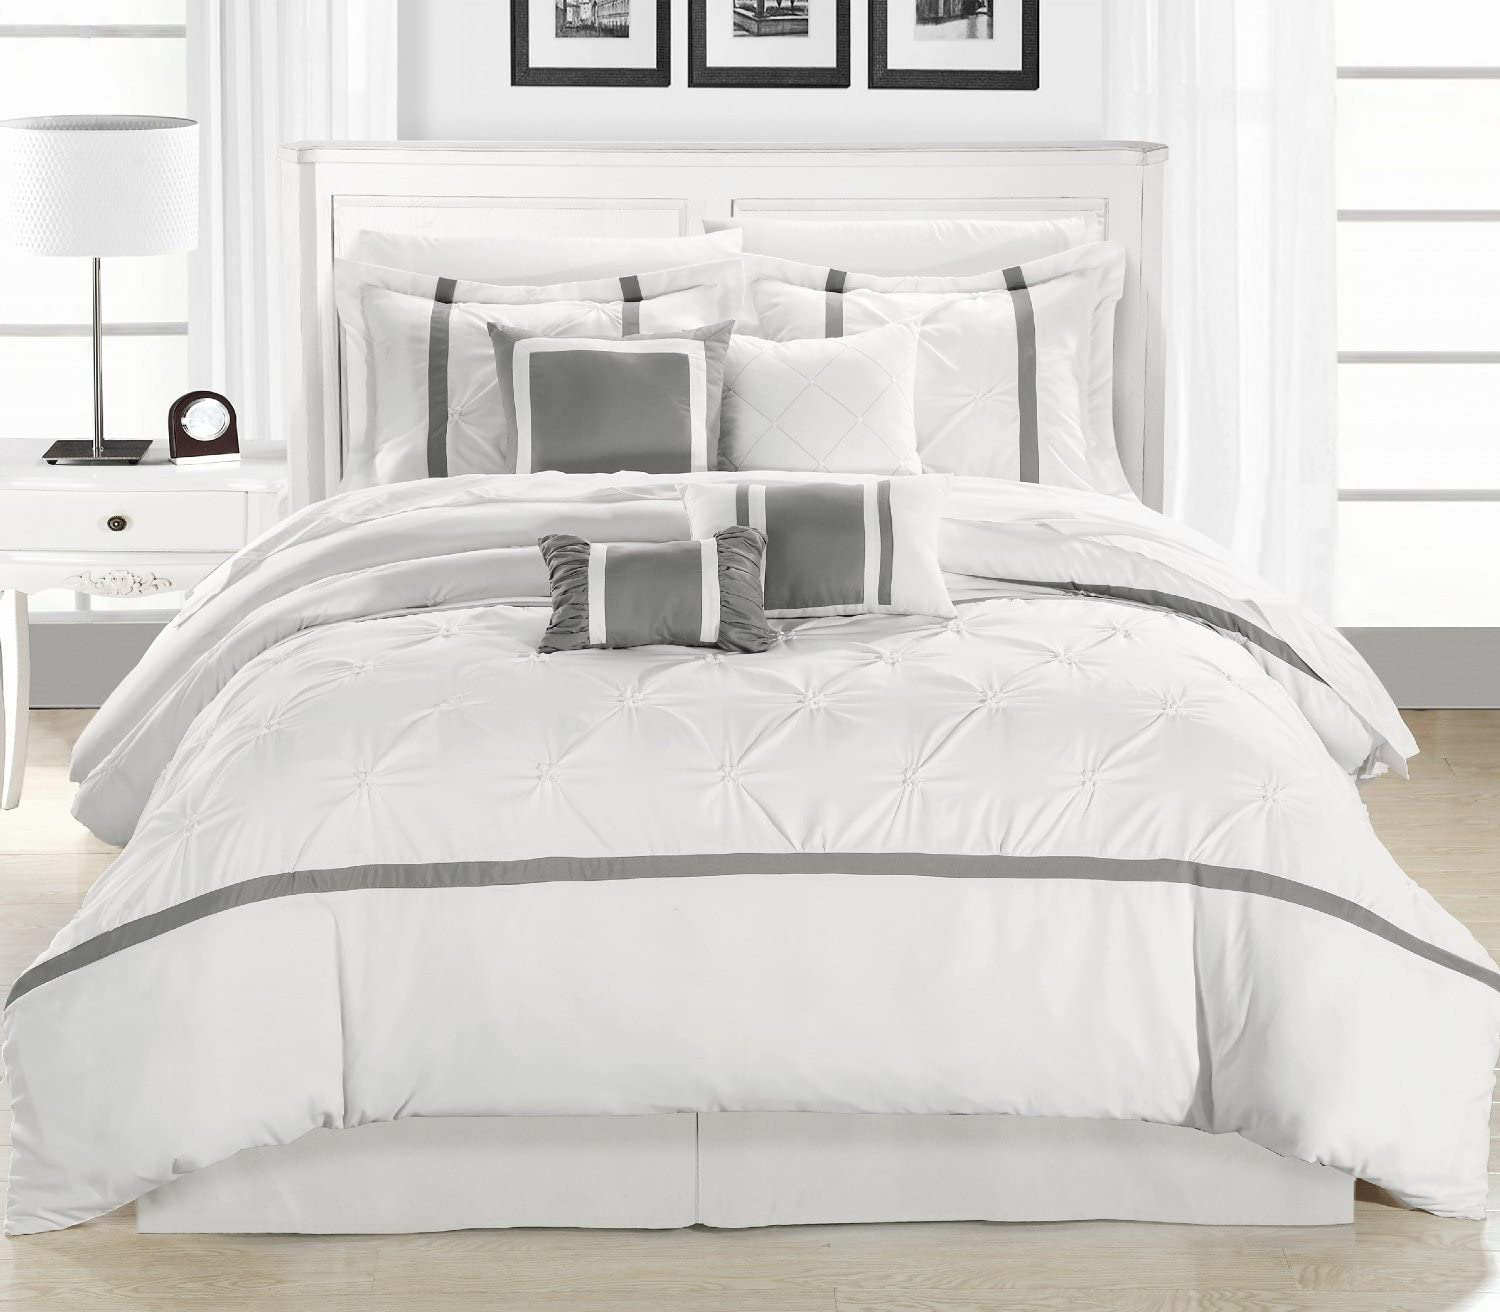 Vermont Silver & White King 8 Piece Embroidered Comforter Bed In A Bag Set